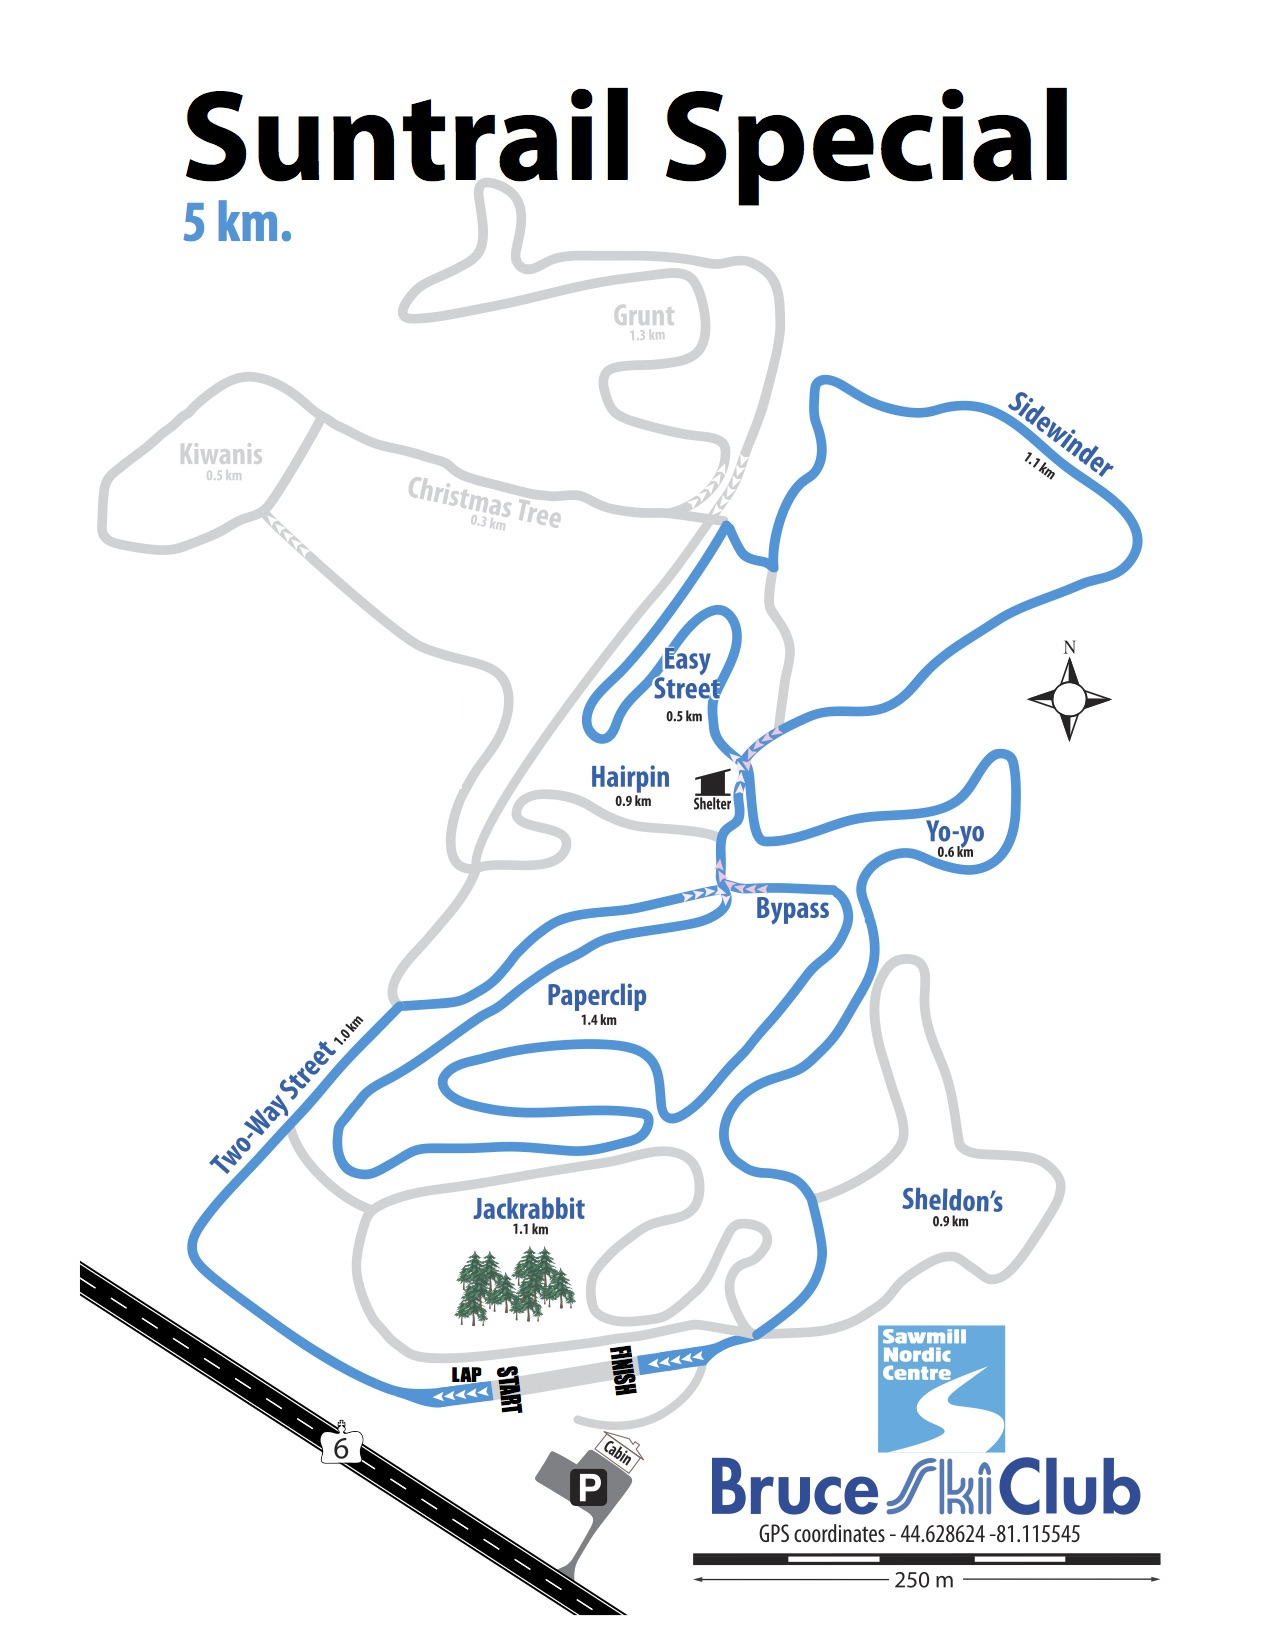 2019 Suntrail Special Cross-Country Ski Race Map – 5 km